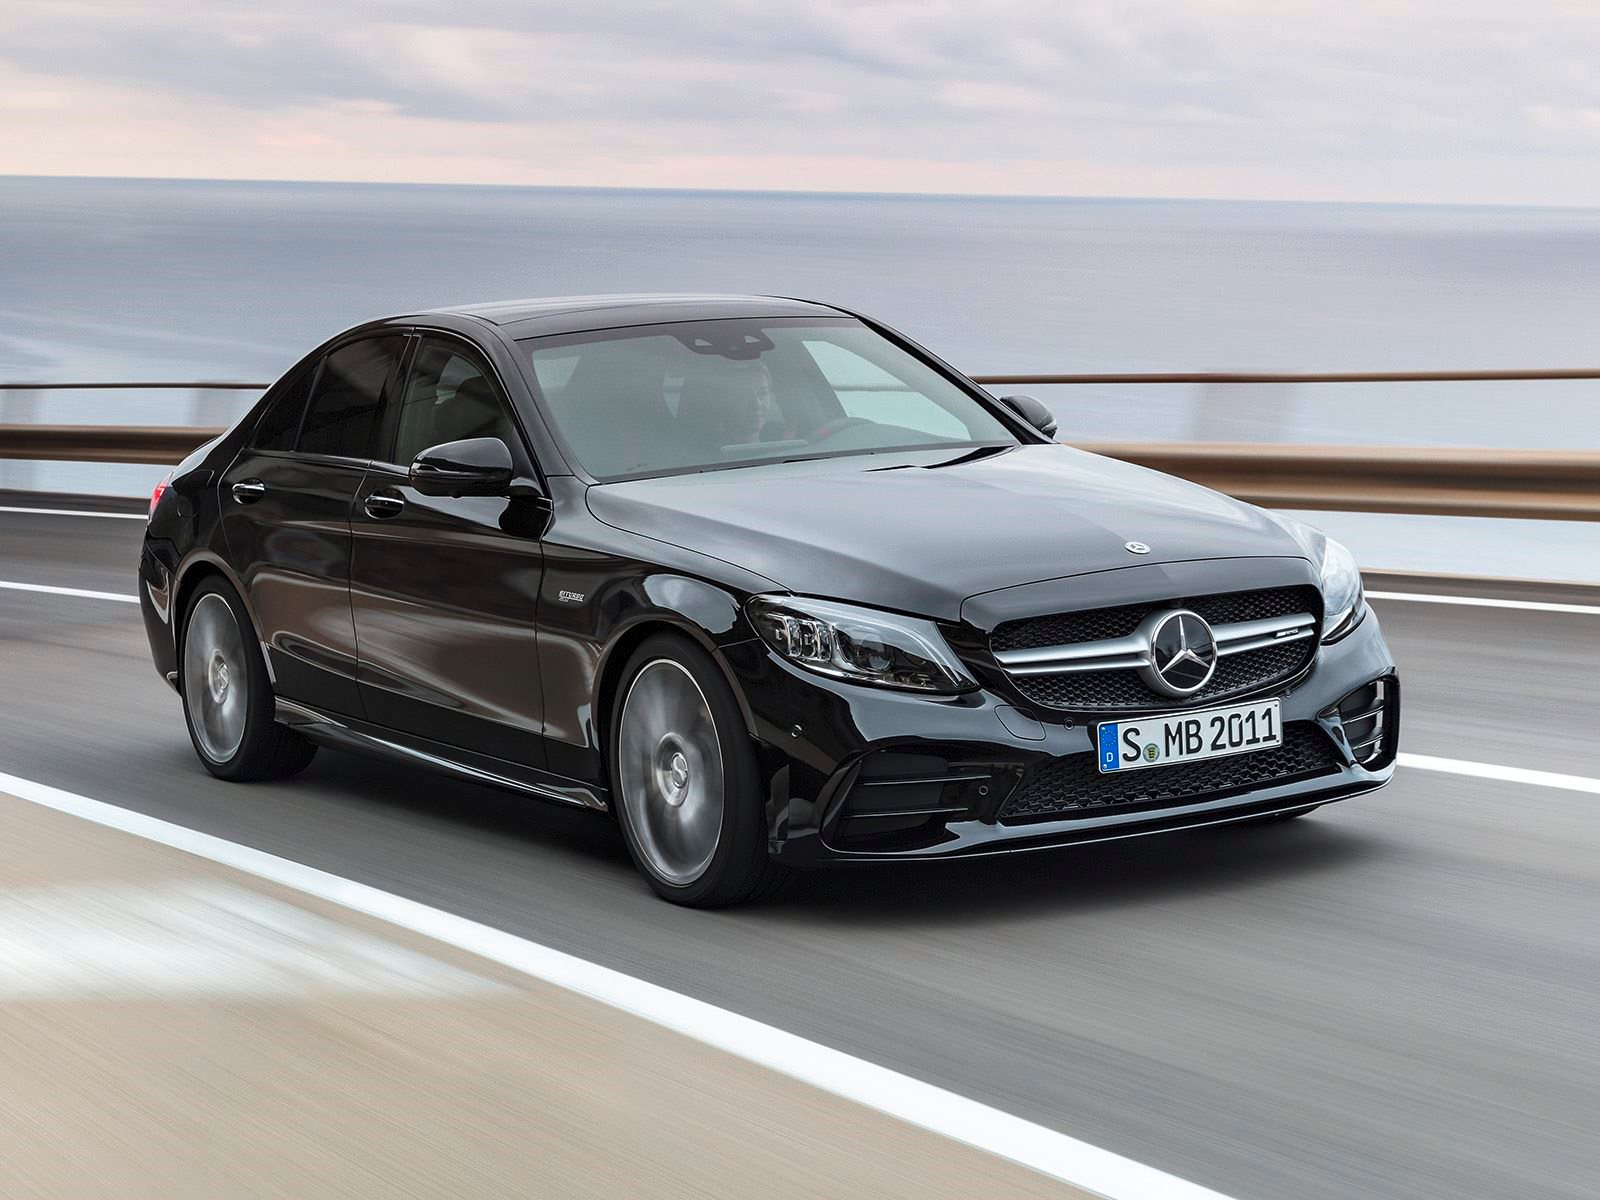 2019 Mercedes-AMG C43 Arrives With More Power And Added Tech